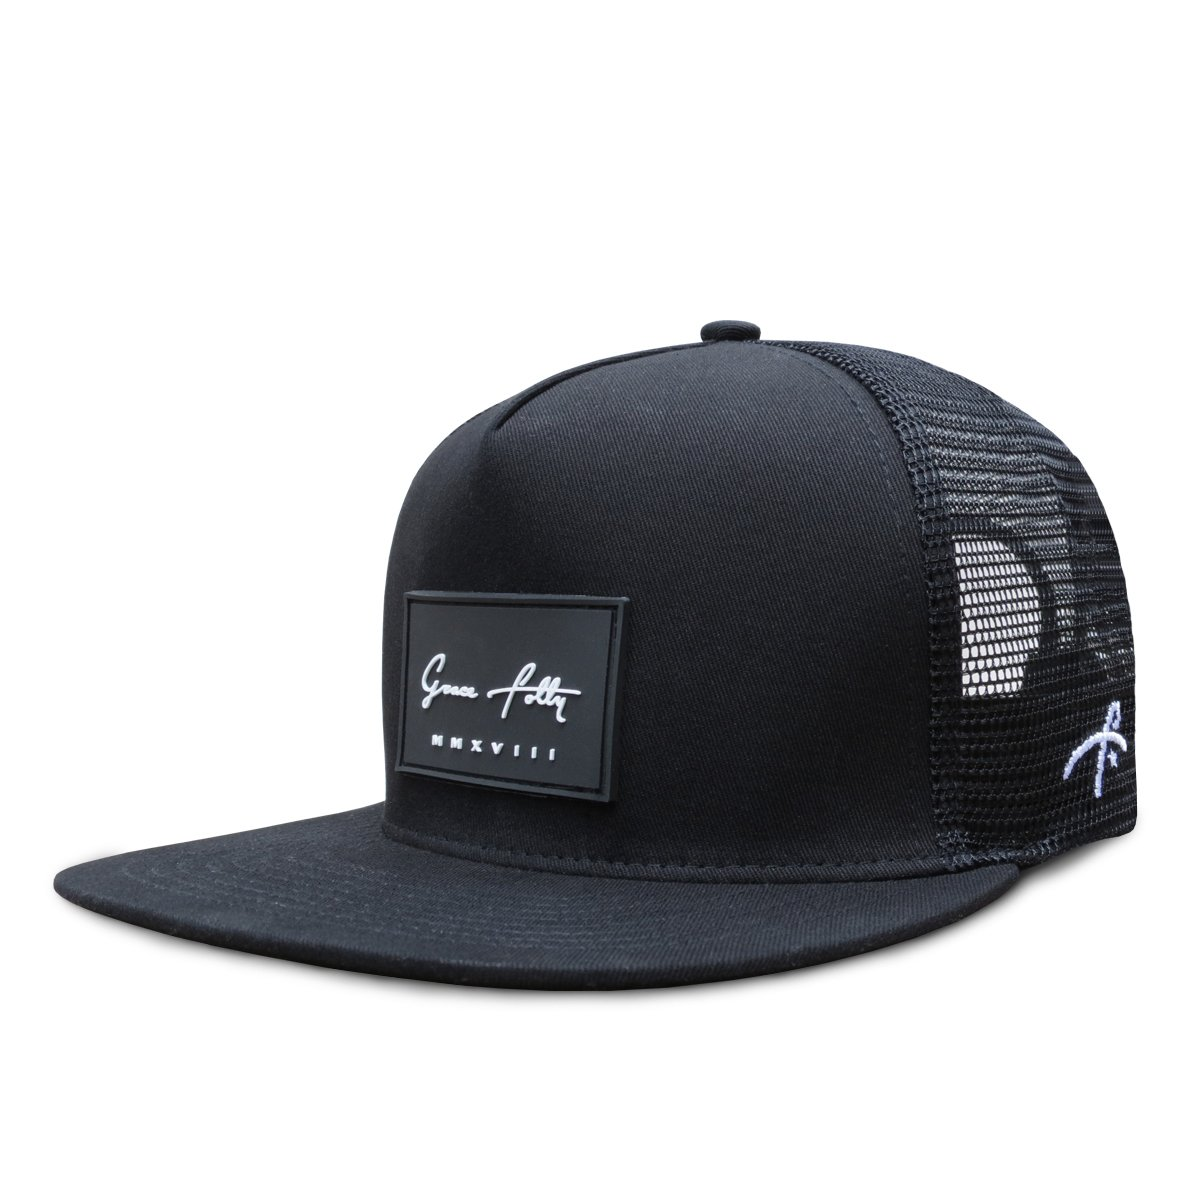 timeless design 50b76 d5cb1 SMOOTH TRUCKER- This Black Grace Folly flat bill trucker hat is sure to  impress! Structured 5 panel trucker cap with mesh back and adjustable  snapback.